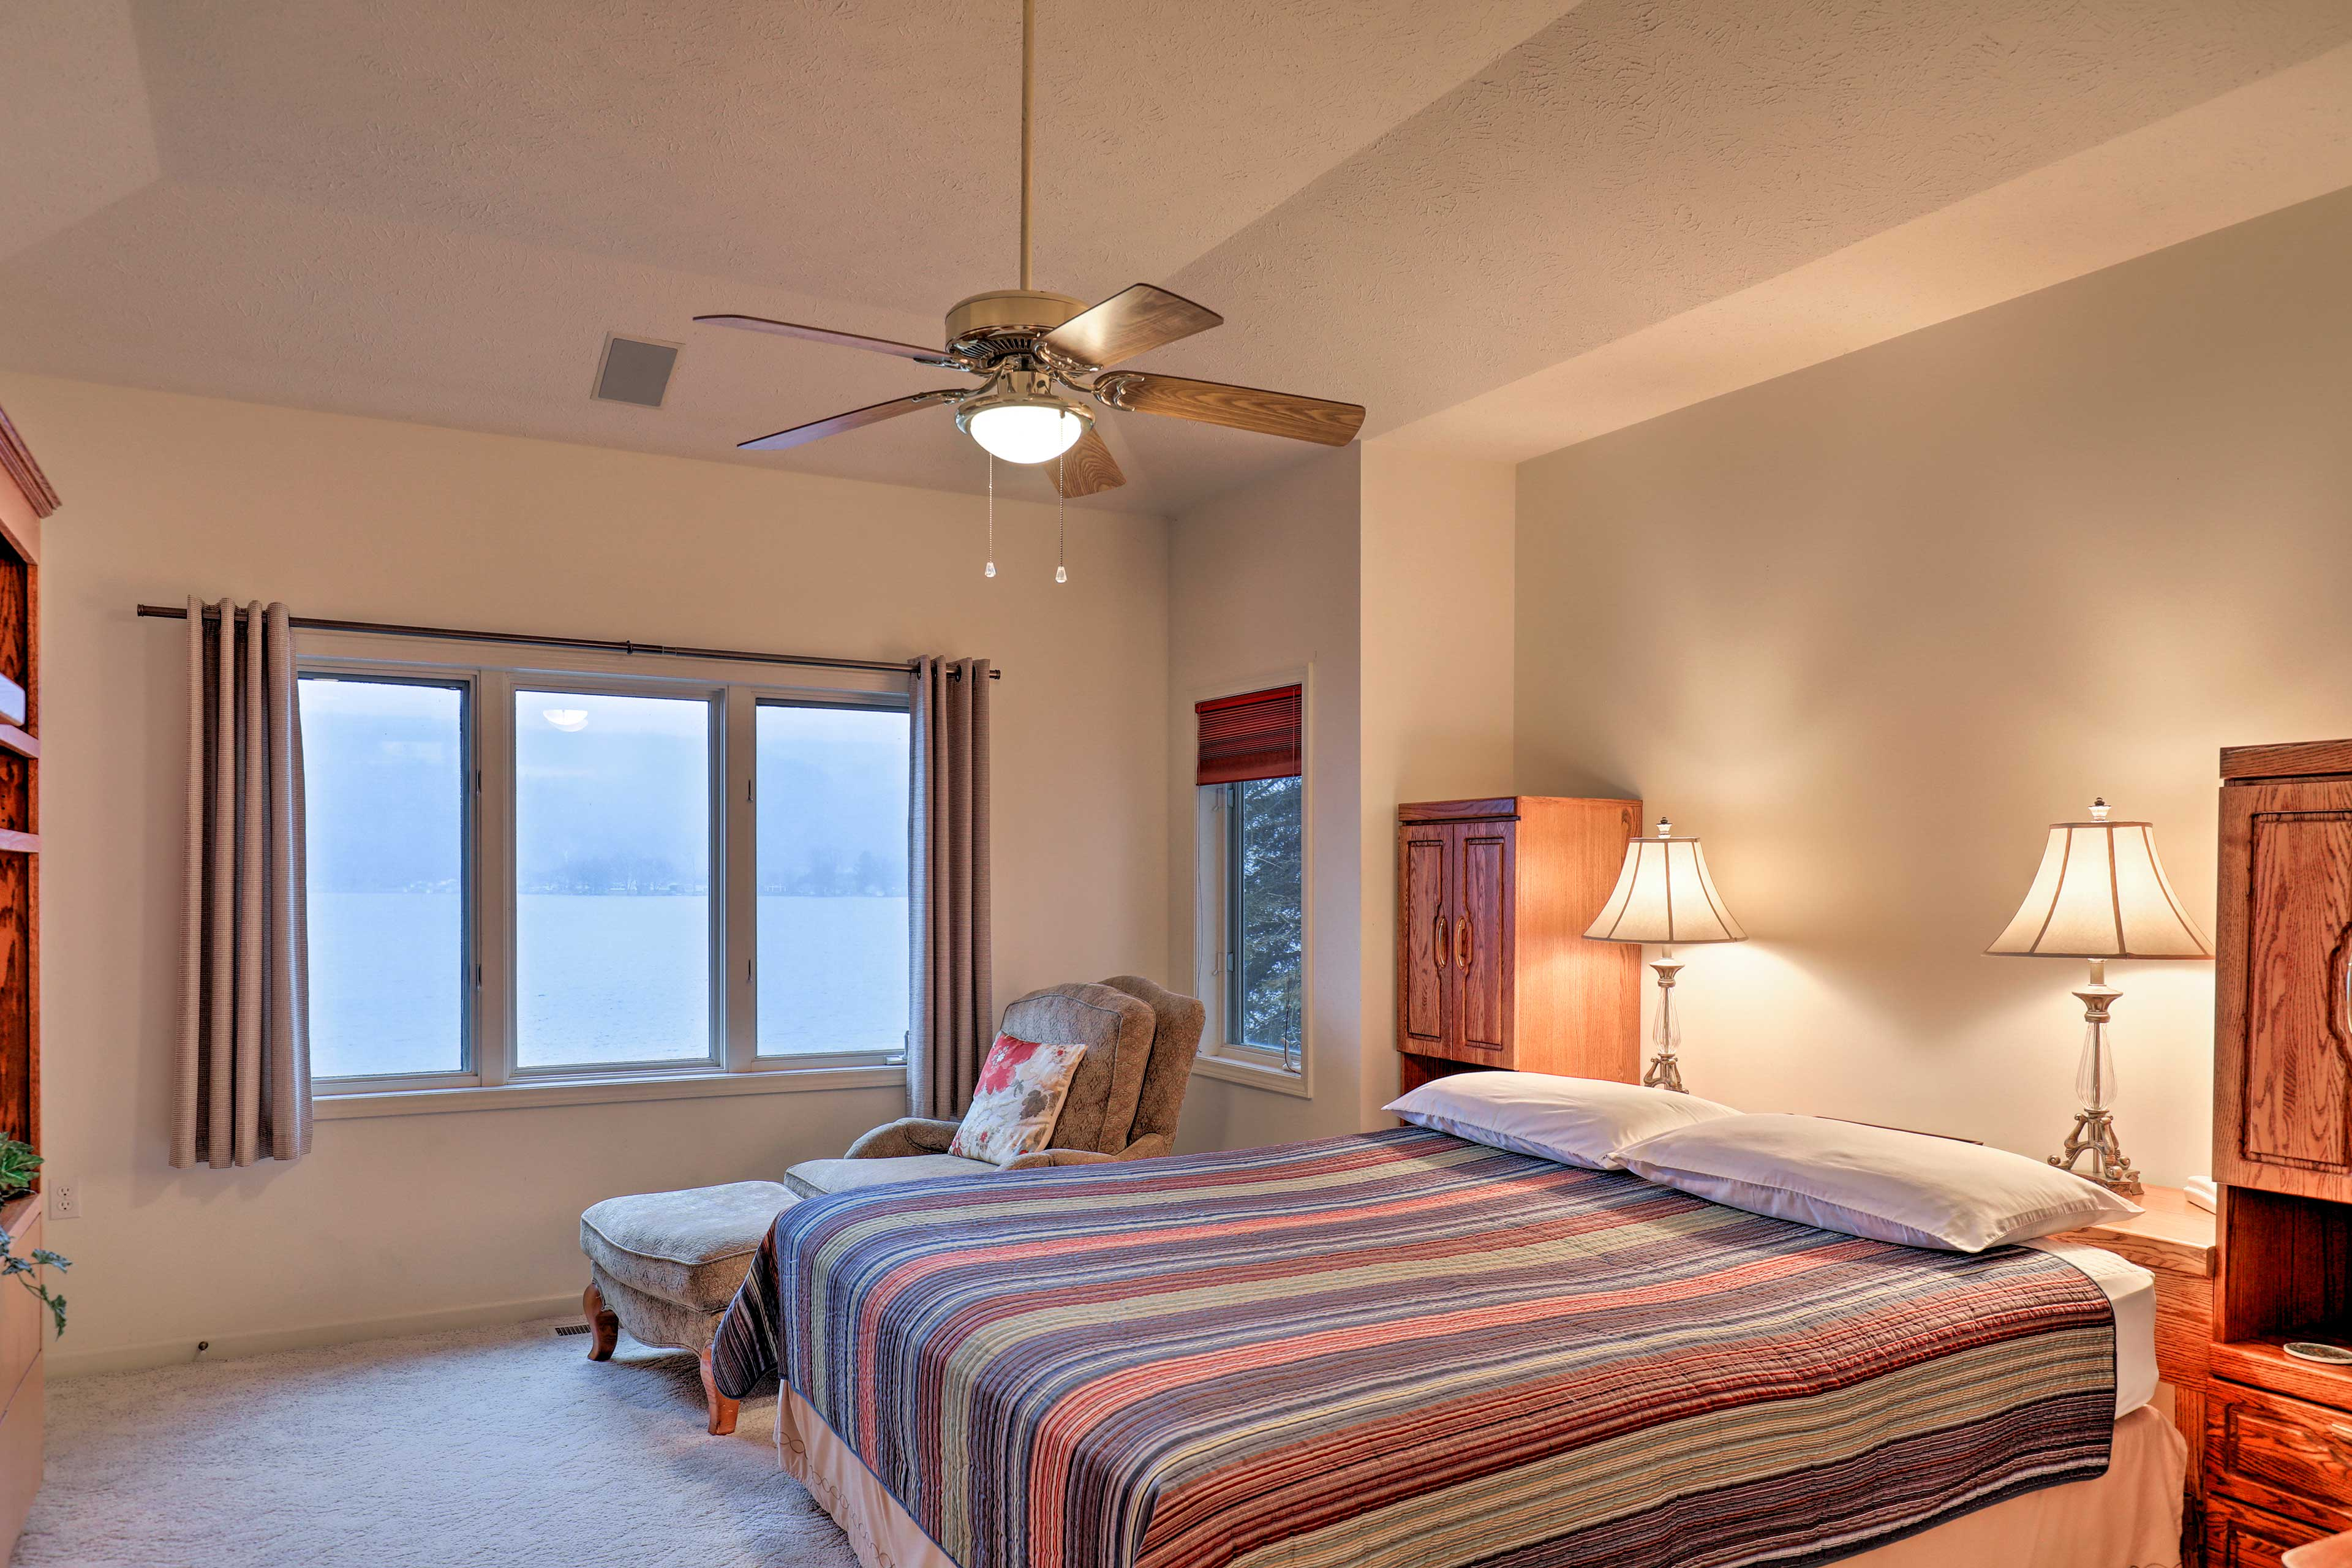 Wake up to views of the water right outside your window.